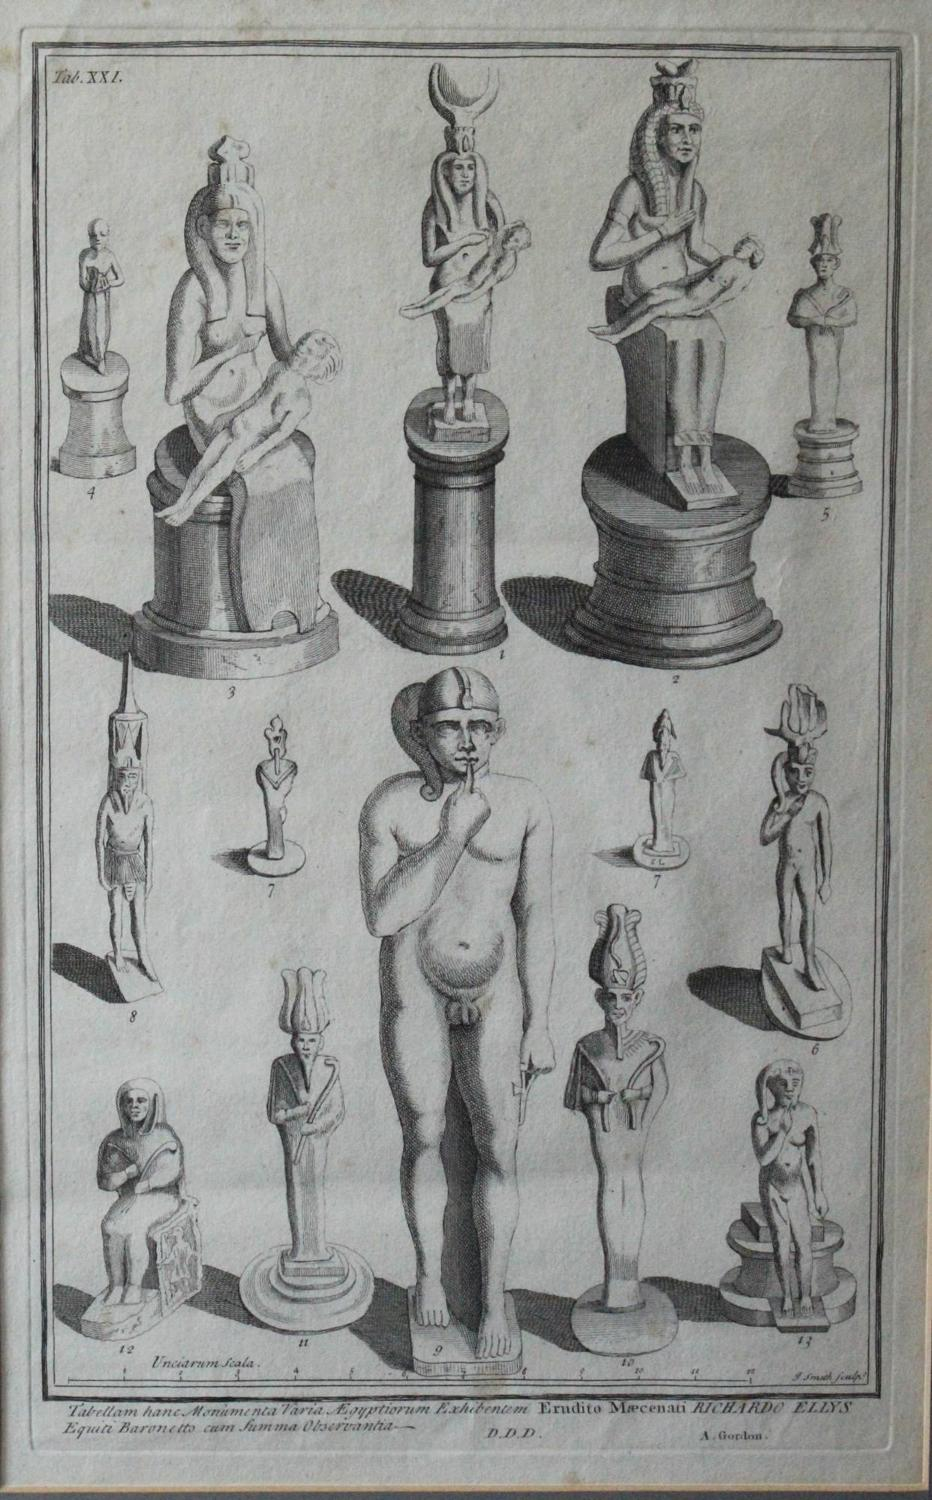 Alexander Gordon Engraving of Ushabti Figures from the Collection of Sir Richard Ellis, 1737